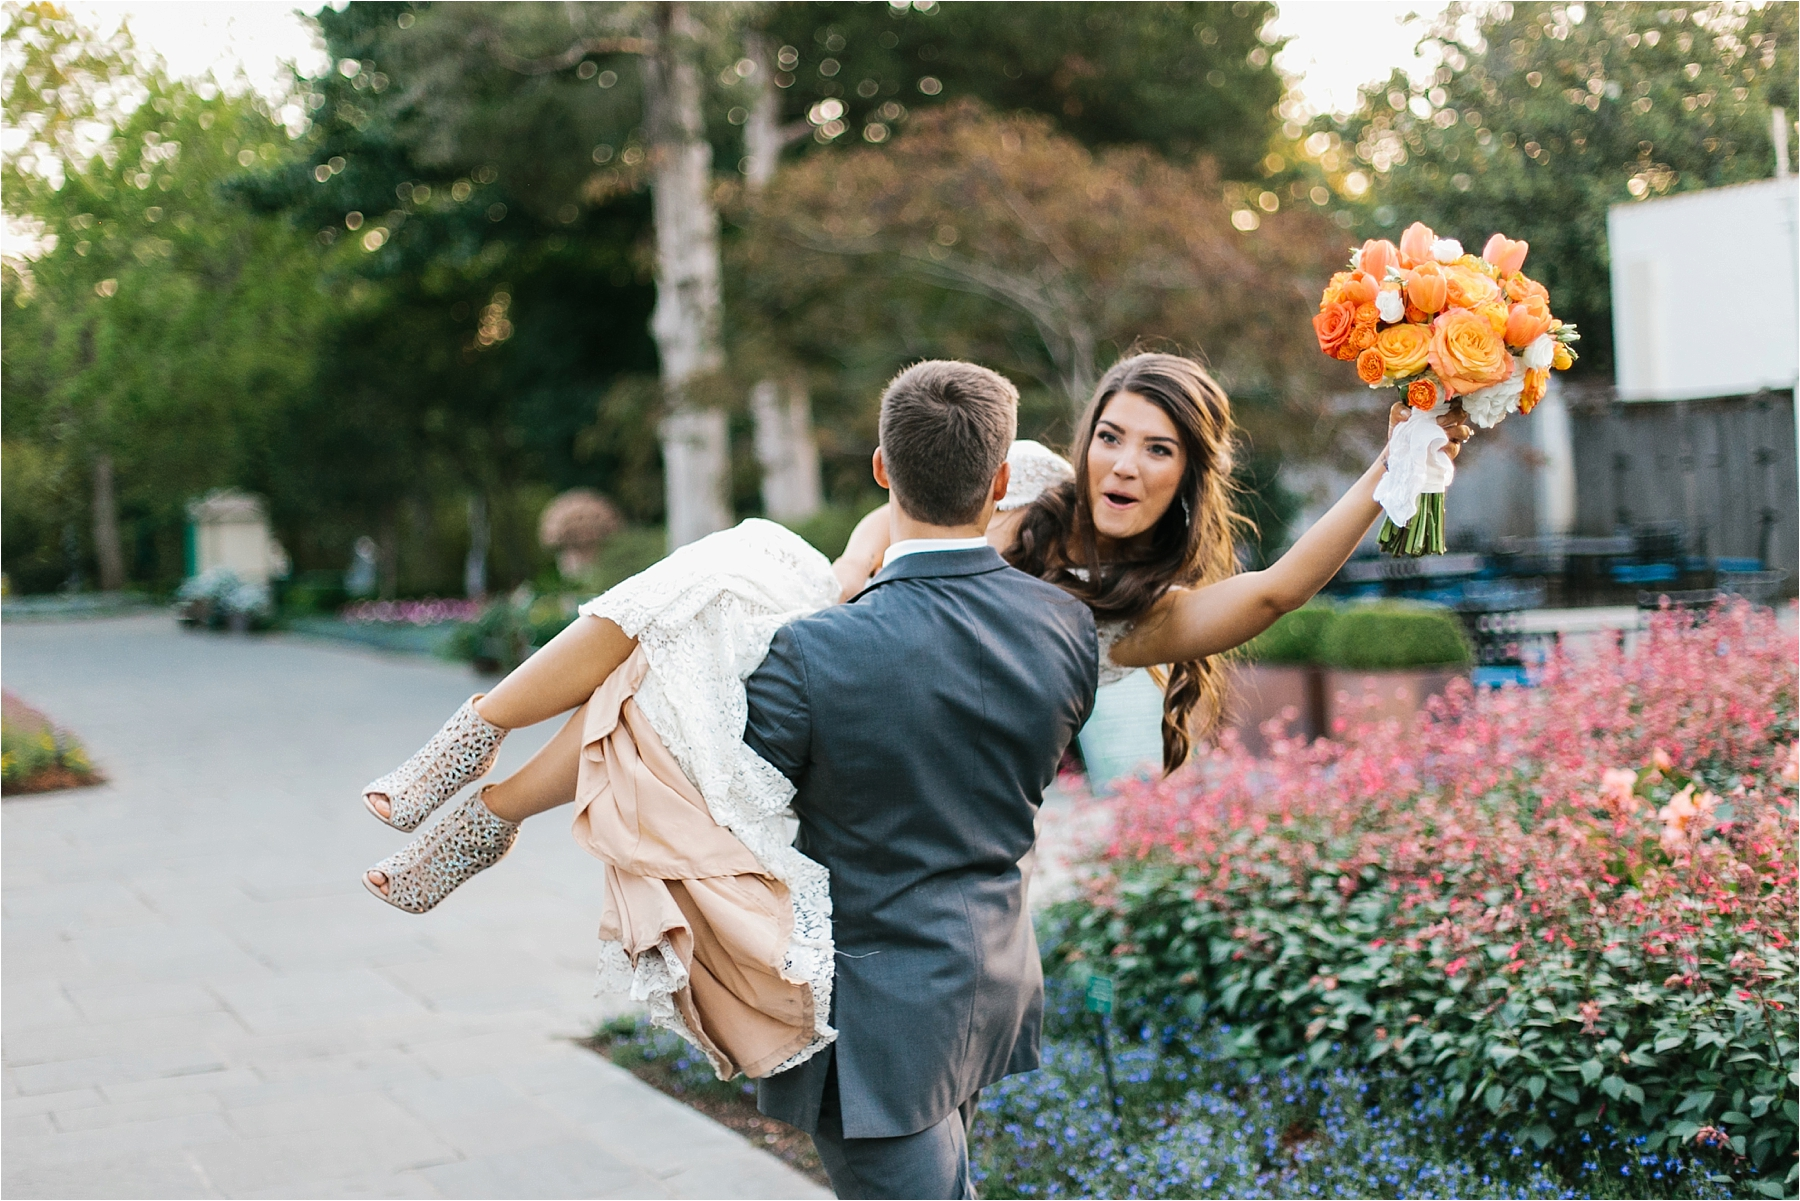 Devyn + Caden __ a Dallas Arboretum Garden Style Wedding by North Texas Wedding Photographer Rachel Meagan Photography __ 118